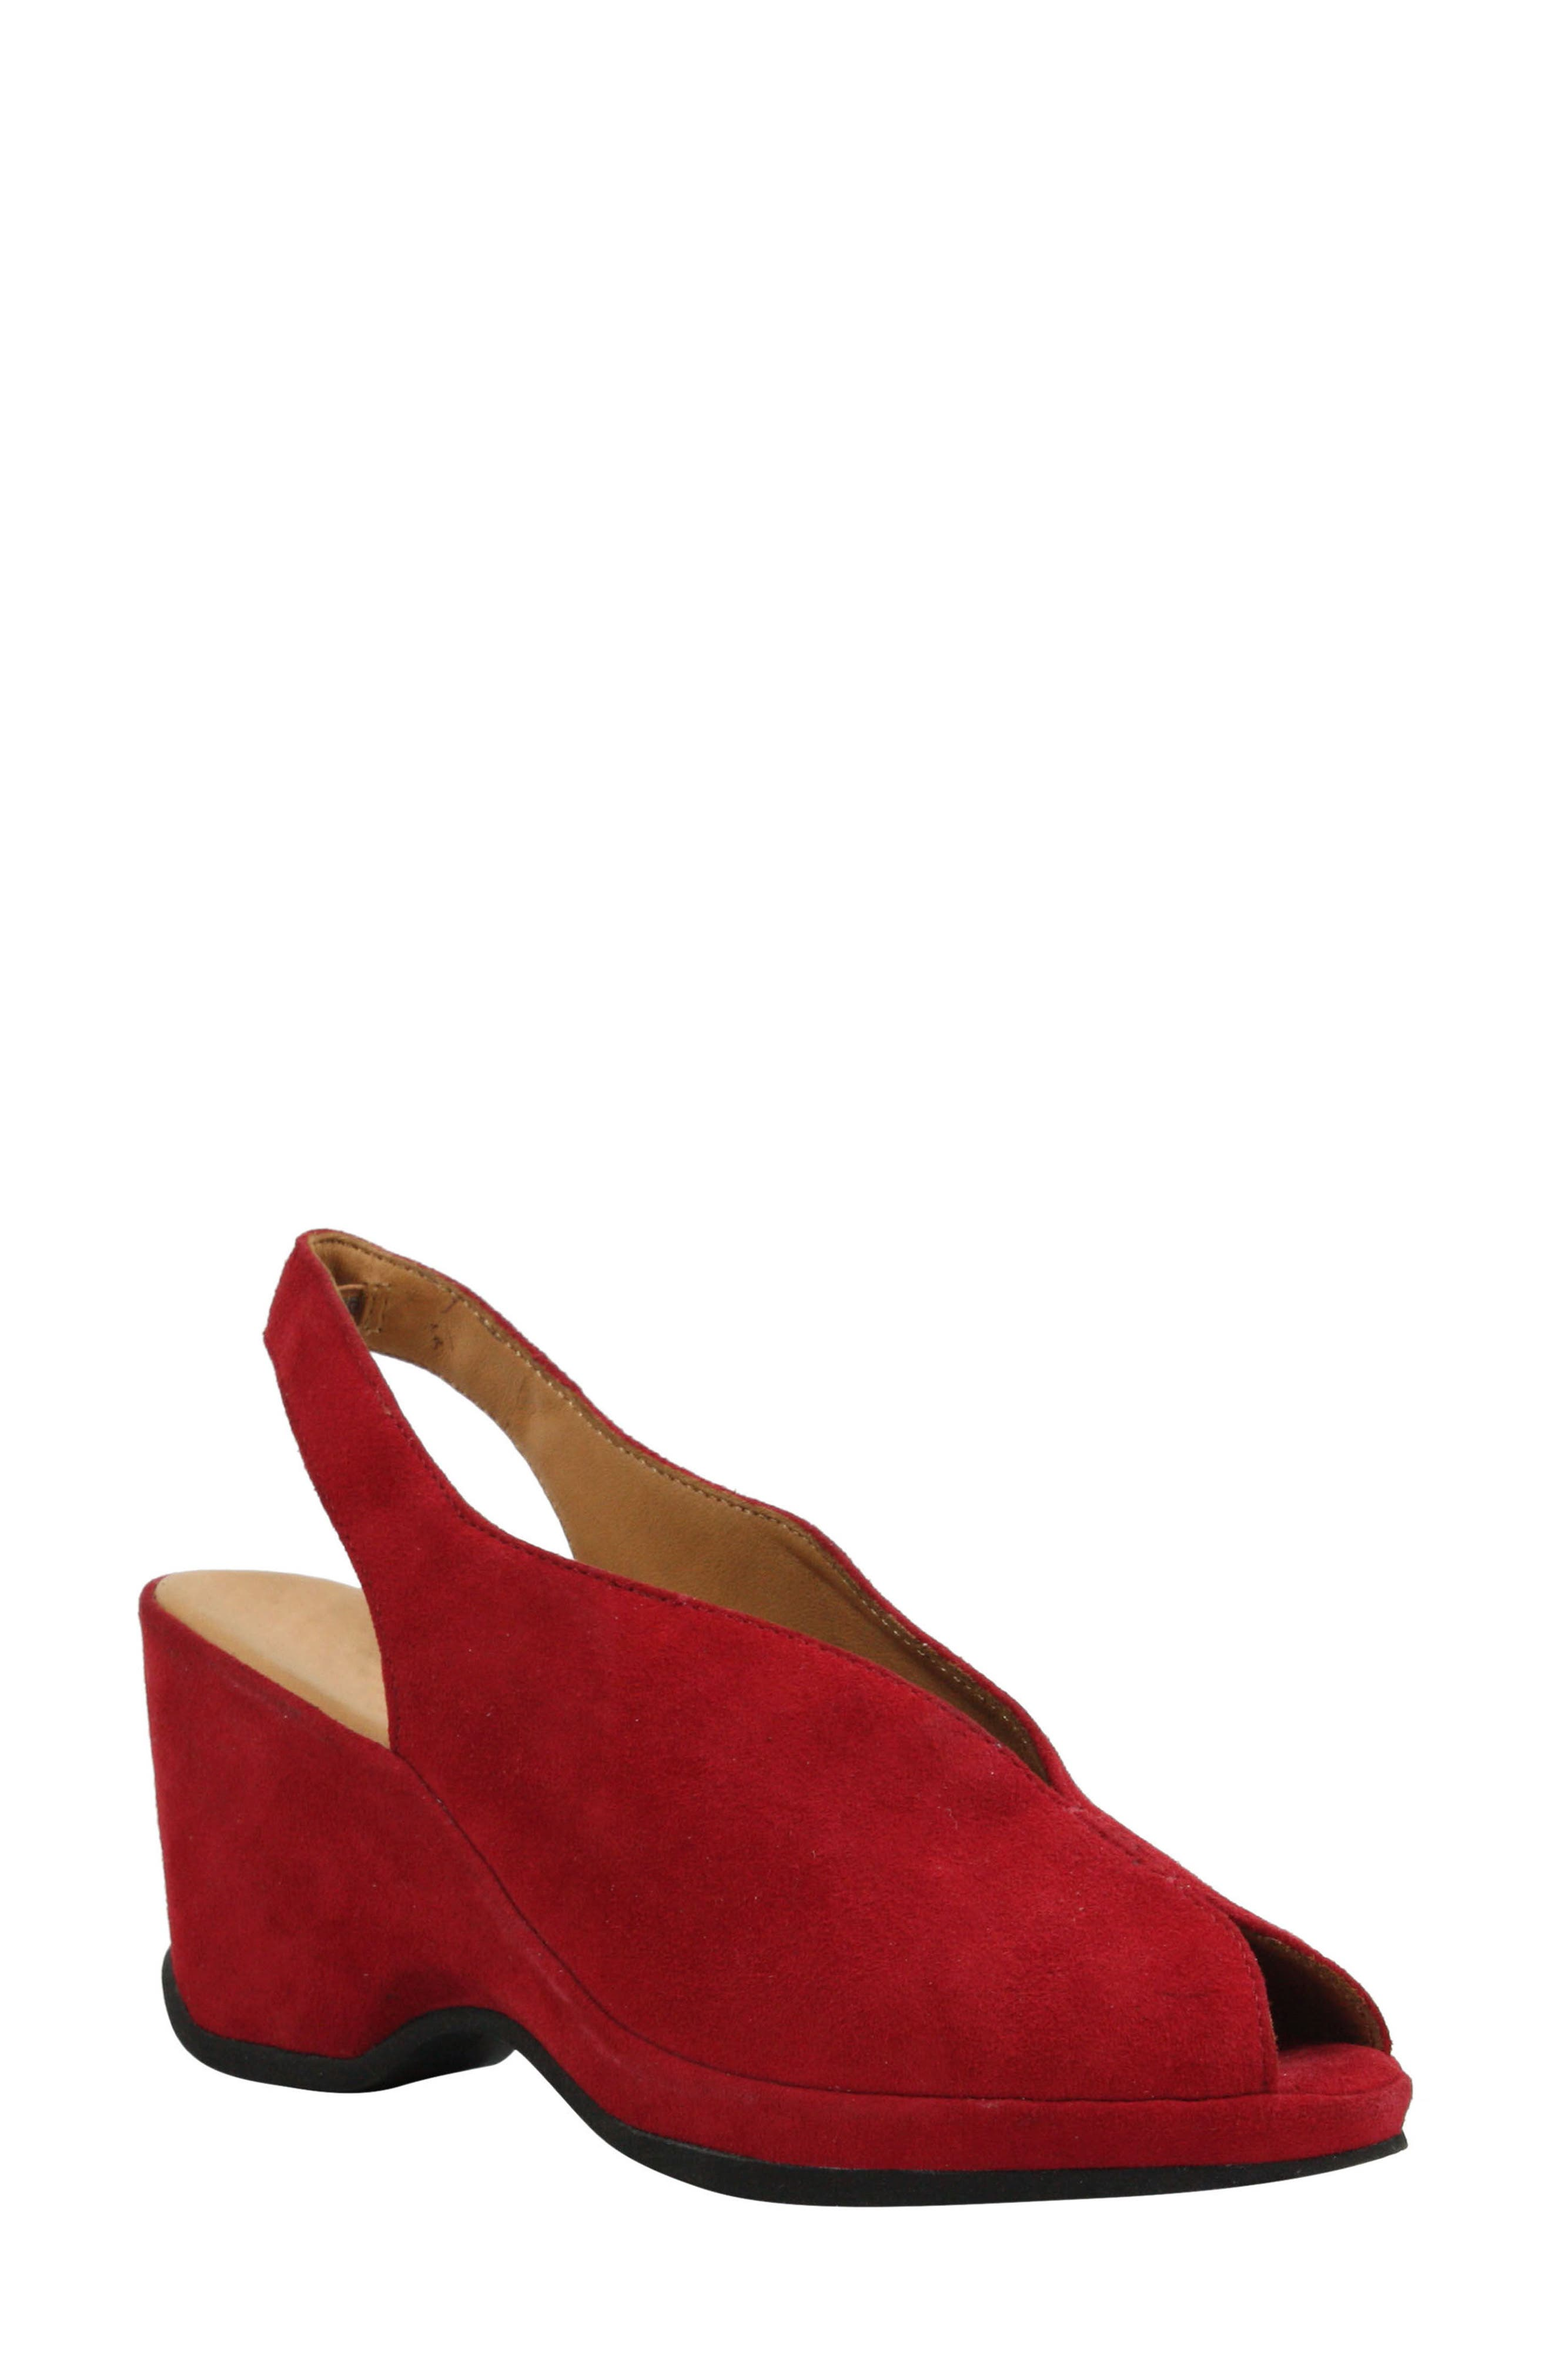 Odetta Slingback Wedge,                         Main,                         color, Bright Red Suede